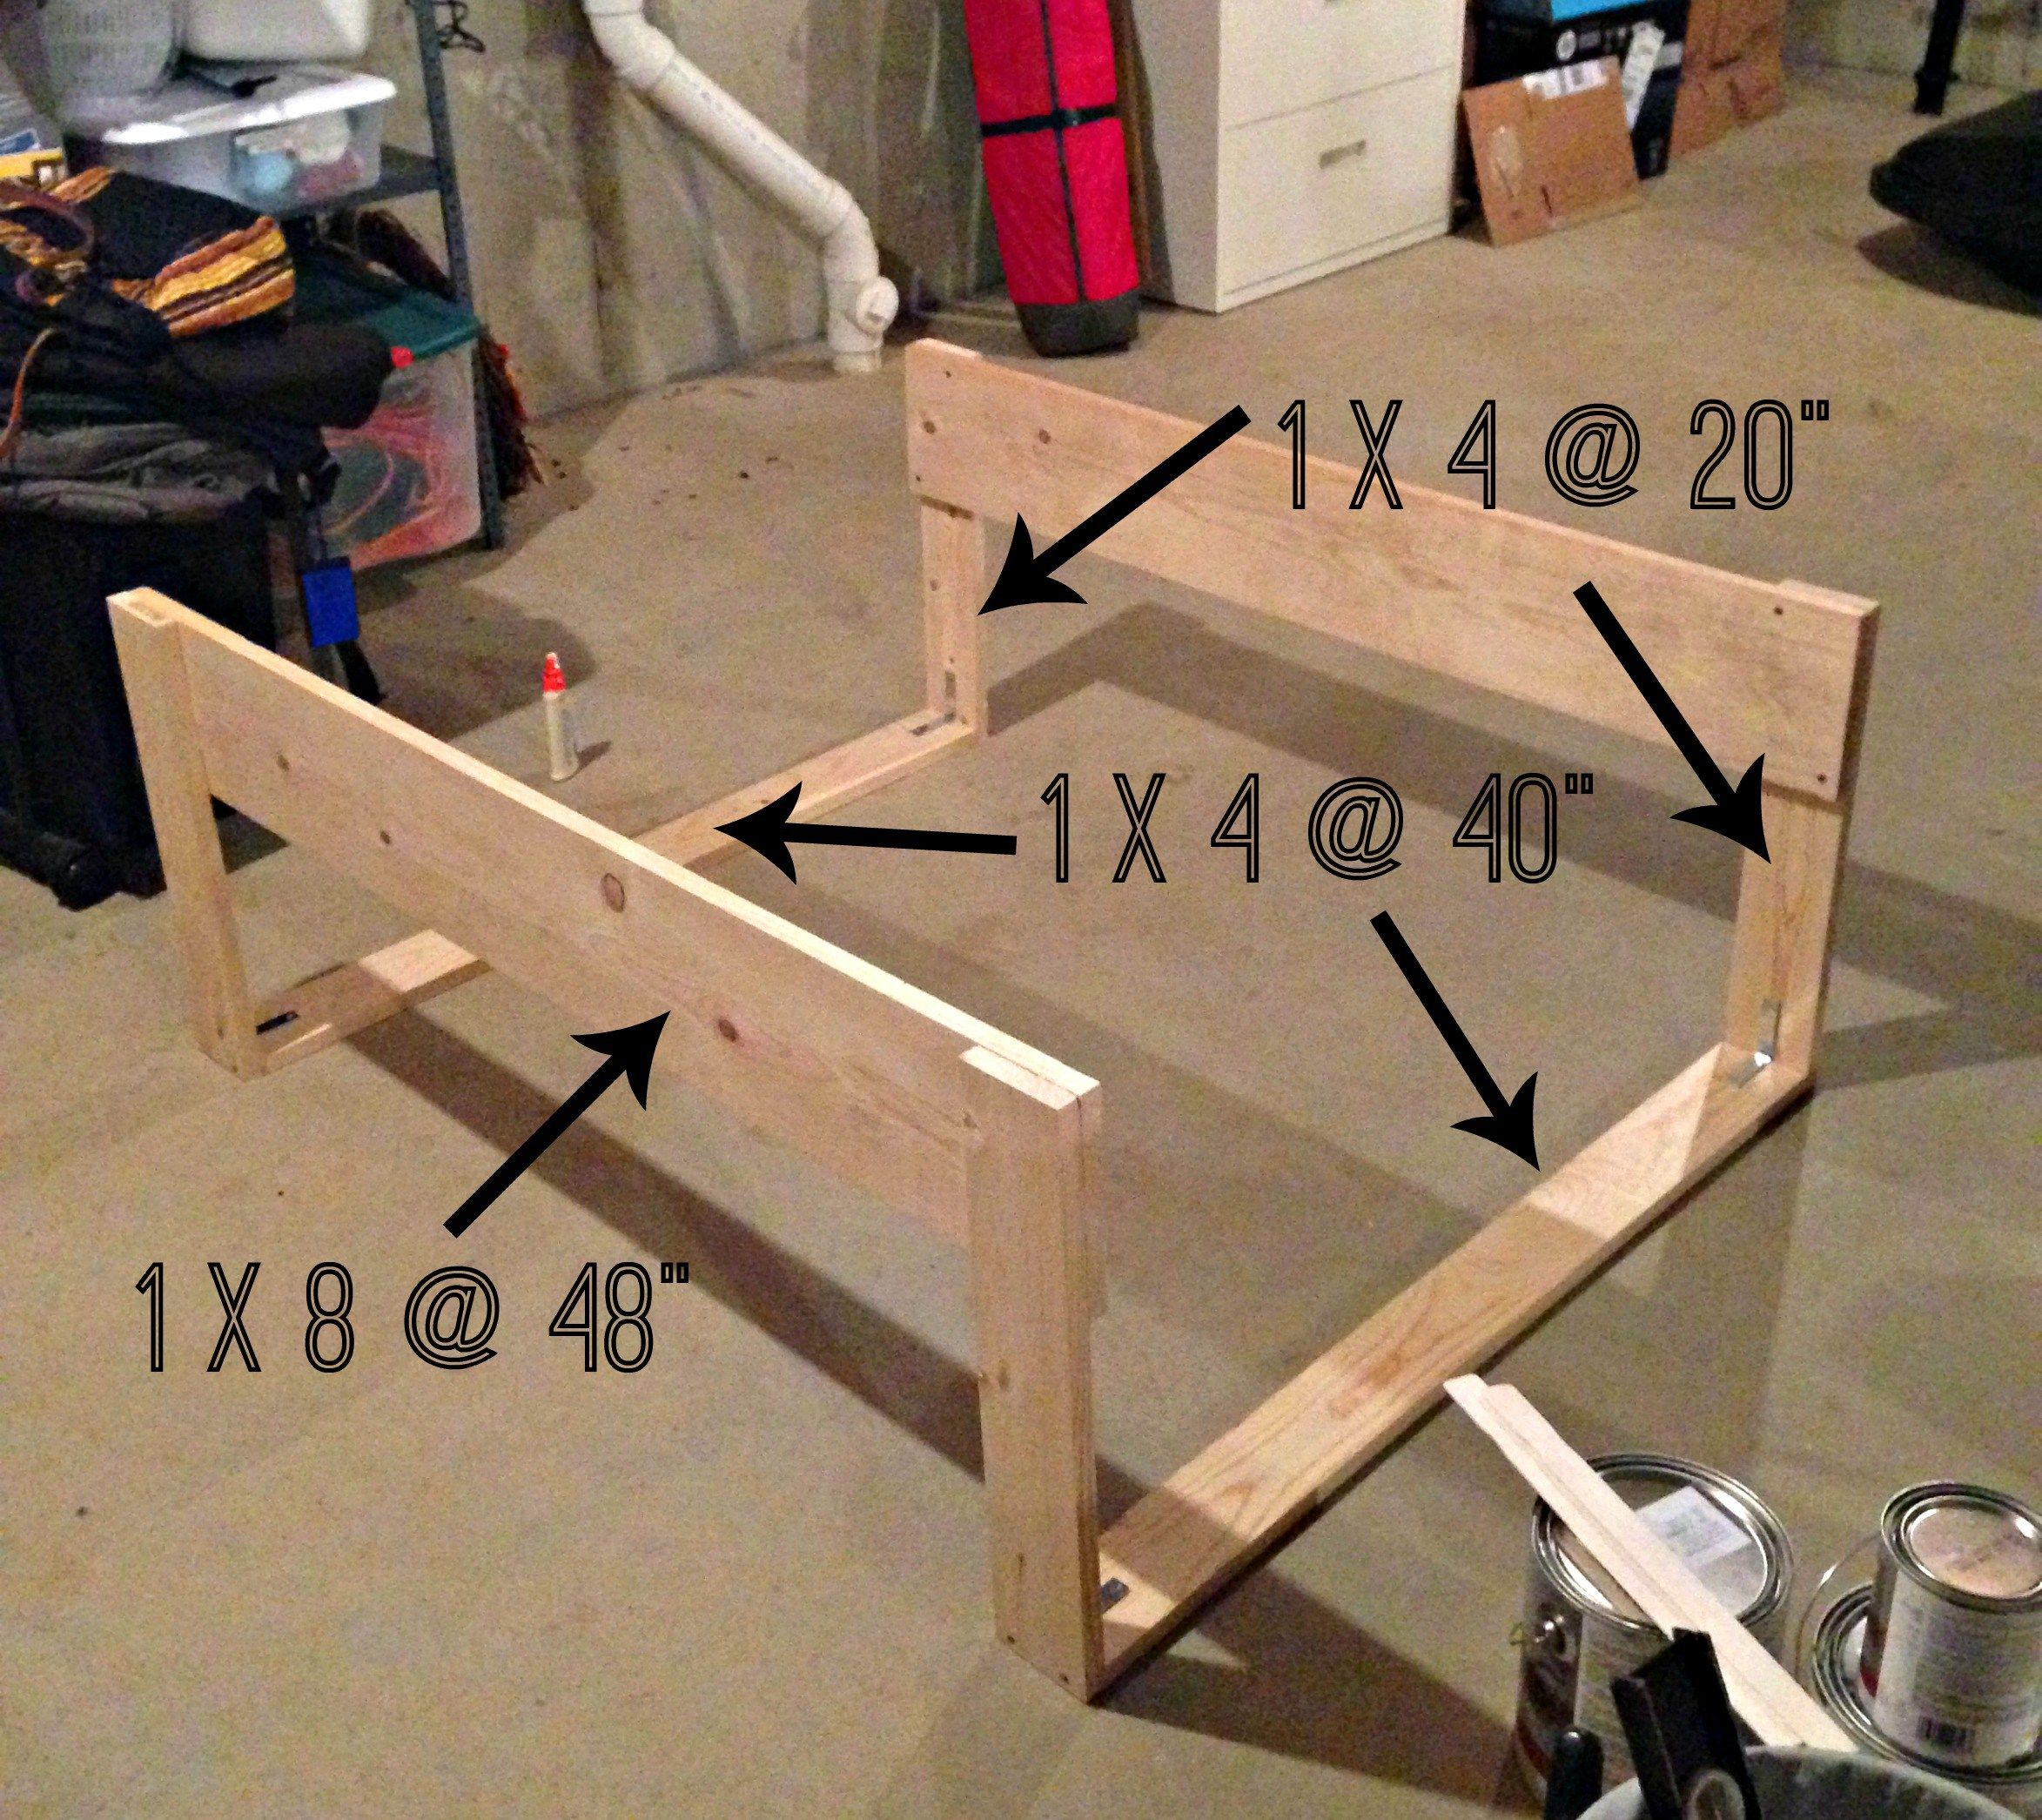 Diy Toddler Bed Rails Diy Toddler Bed Bed Rails For Toddlers